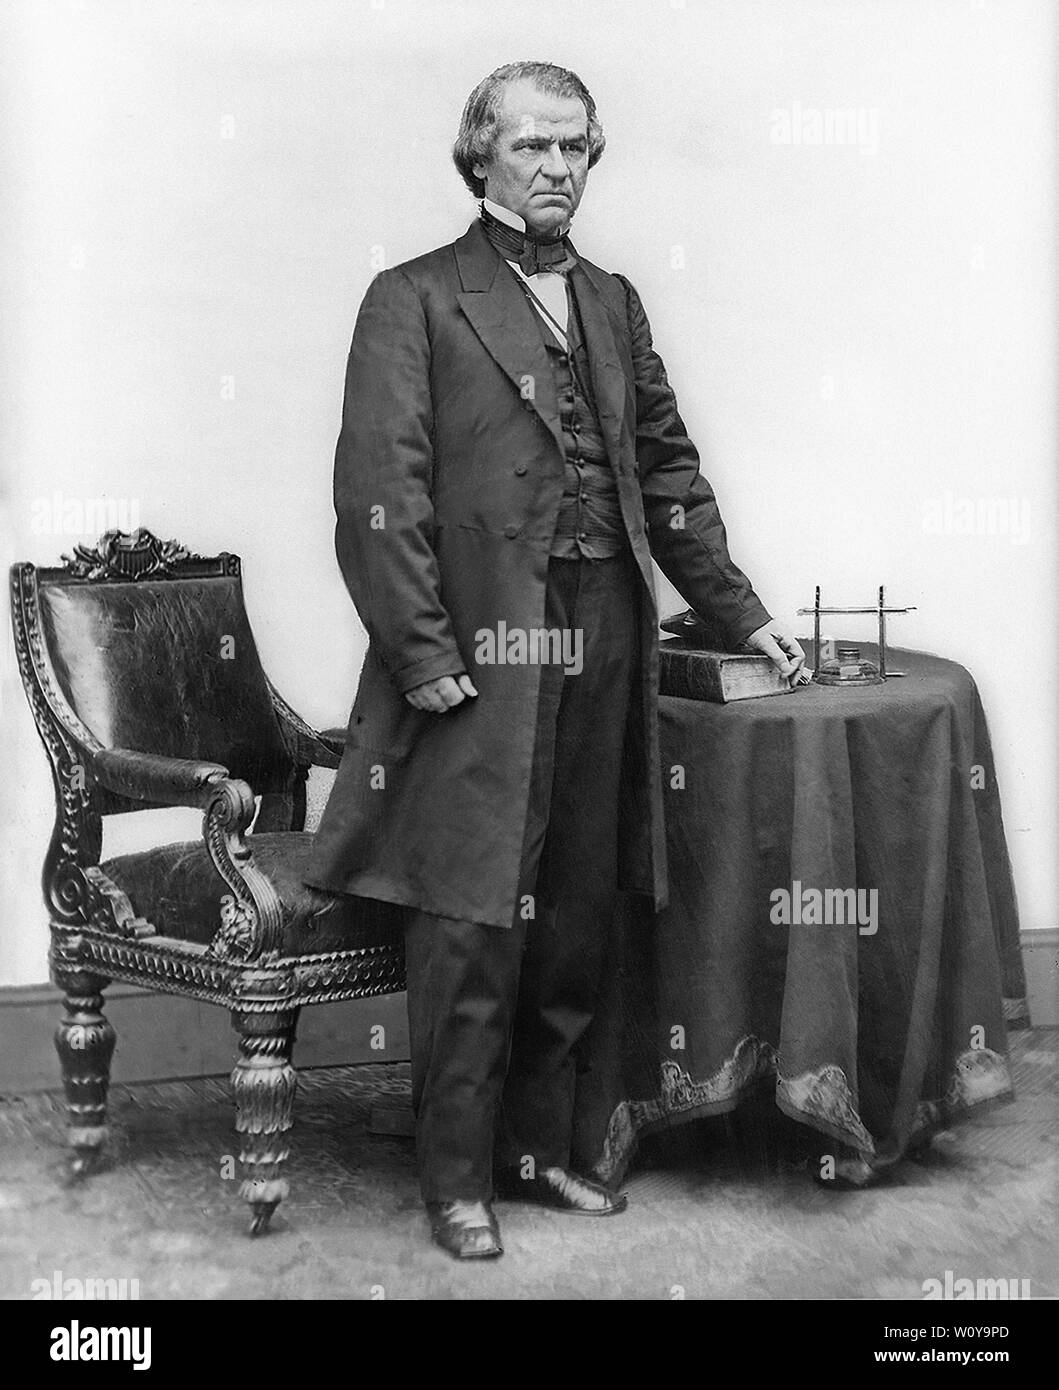 Andrew Johnson (1808-75), 17th President of the United States, Full-Length Standing Portrait, Photograph, Mathew B. Brady, Brady-Handy Collection, Washington DC, USA, 1865 - Stock Image